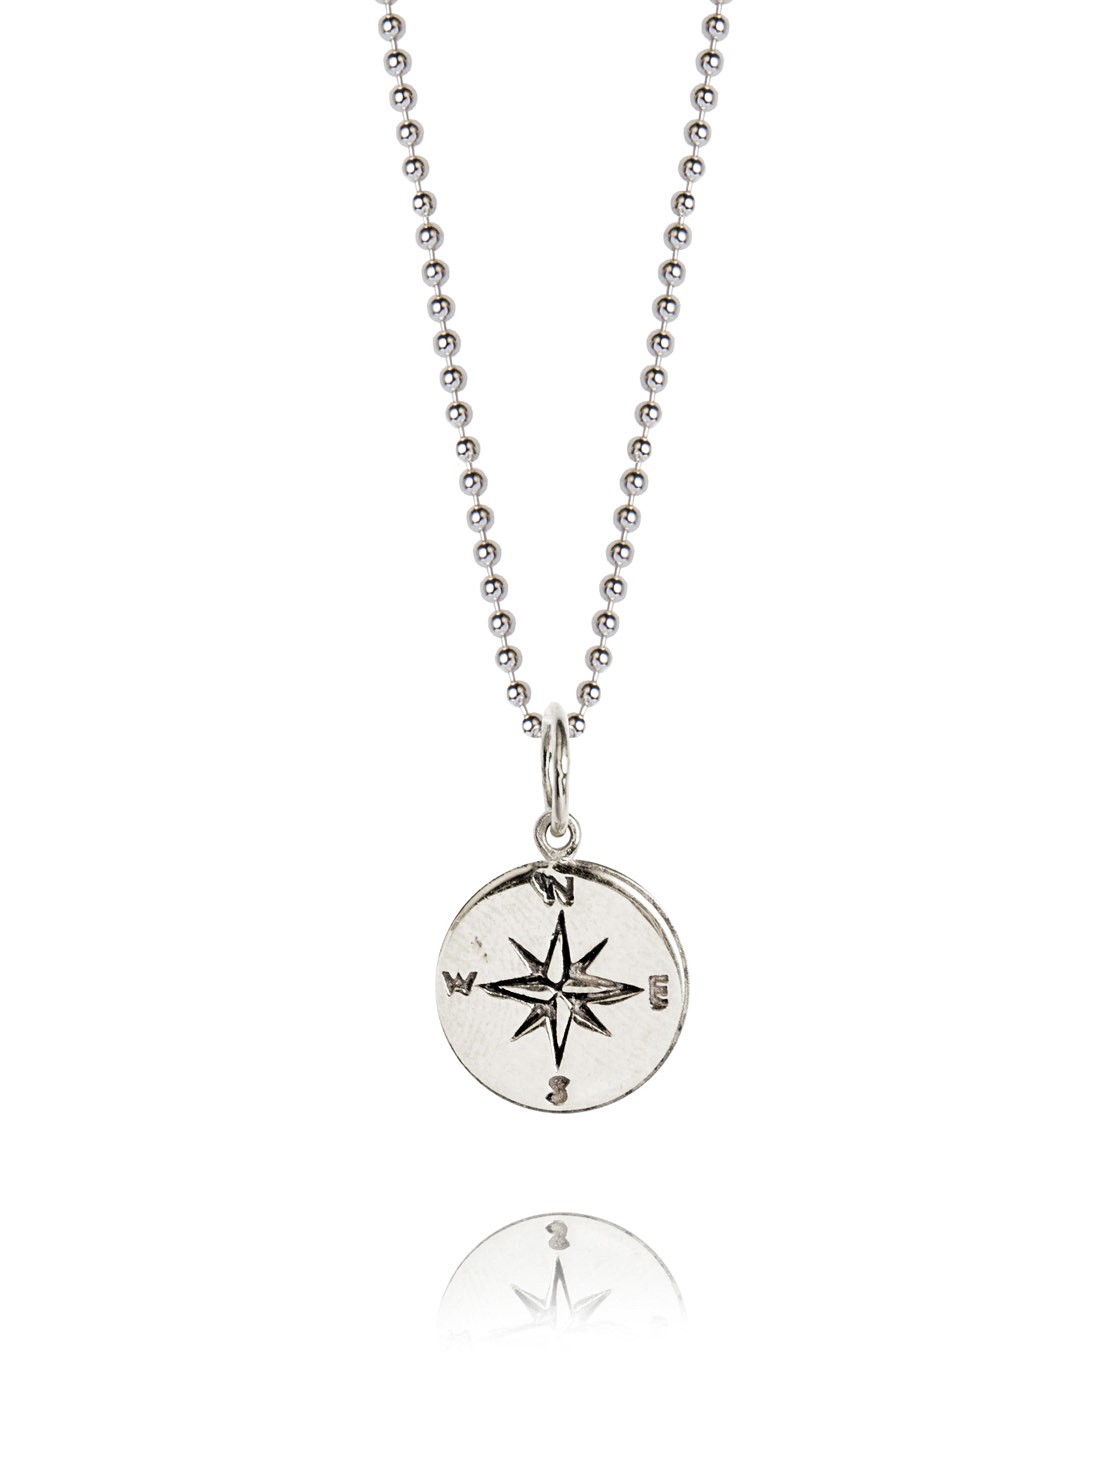 direction compass be vila d life i without you rosa of shop lost products necklace